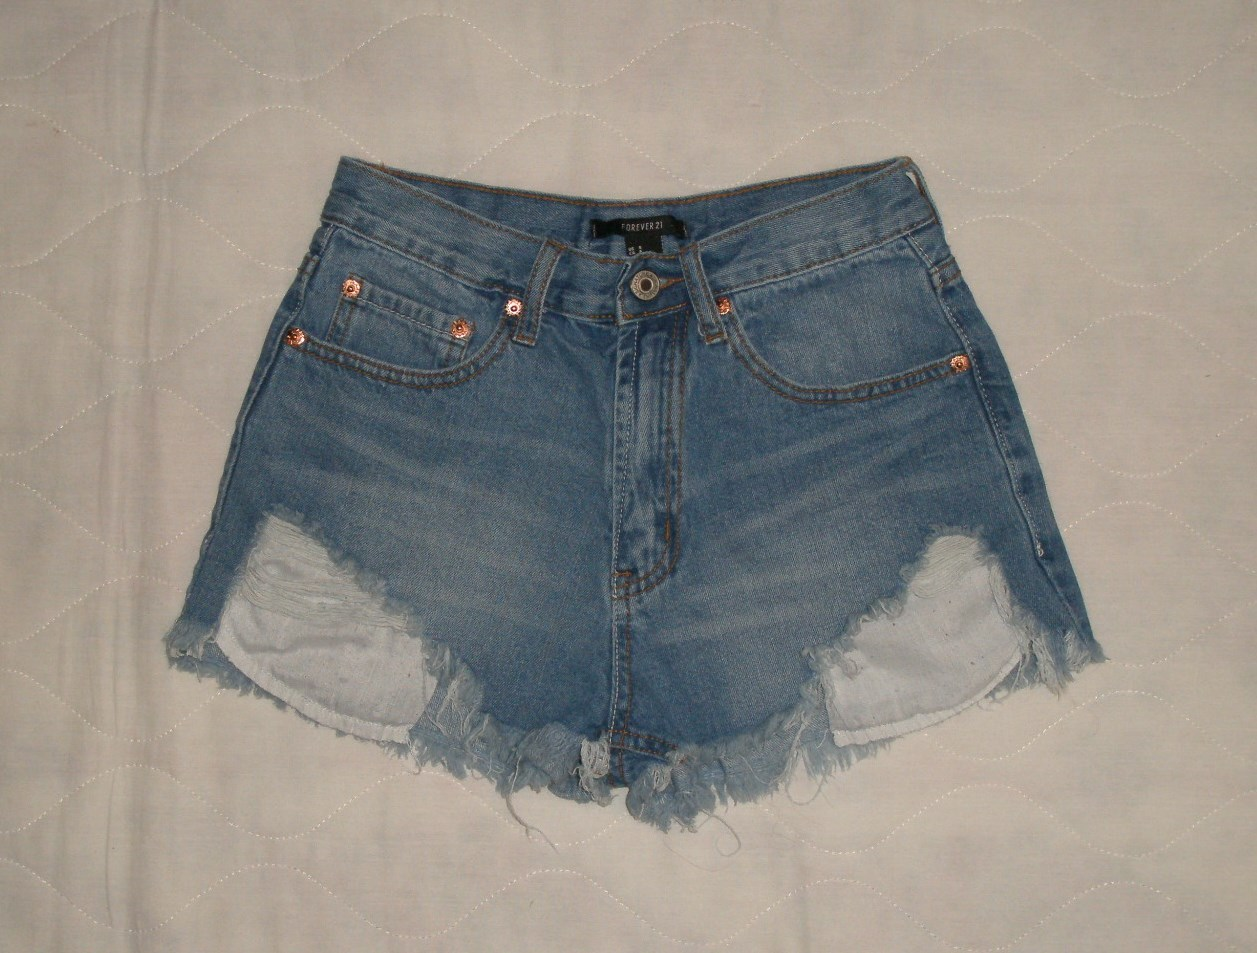 Primary image for Forever 21 High Waist Rise Distressed Denim Jean Shorts Size S 4 5 6 26 27 28